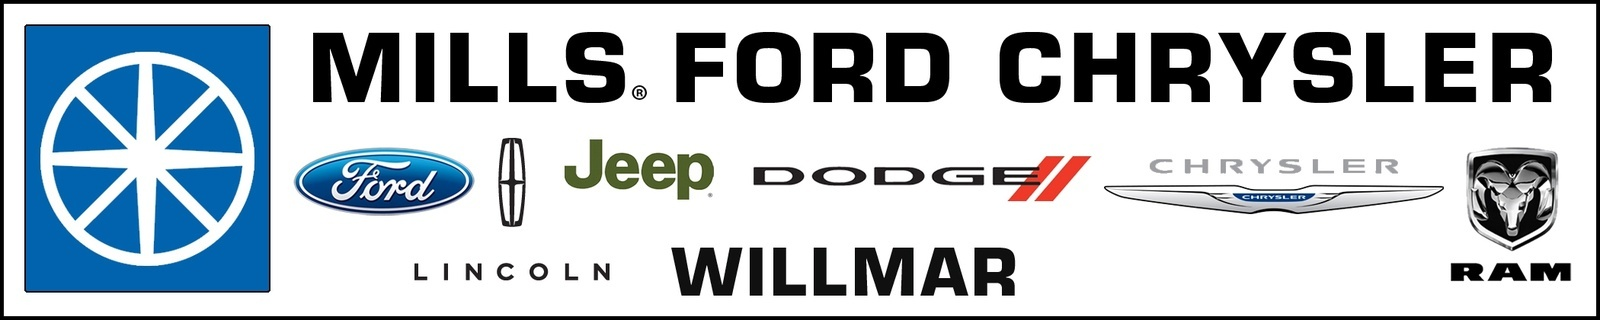 Willmar (MN) United States  city photos : Mills Ford Chrysler Willmar, MN Reviews & Deals CarGurus